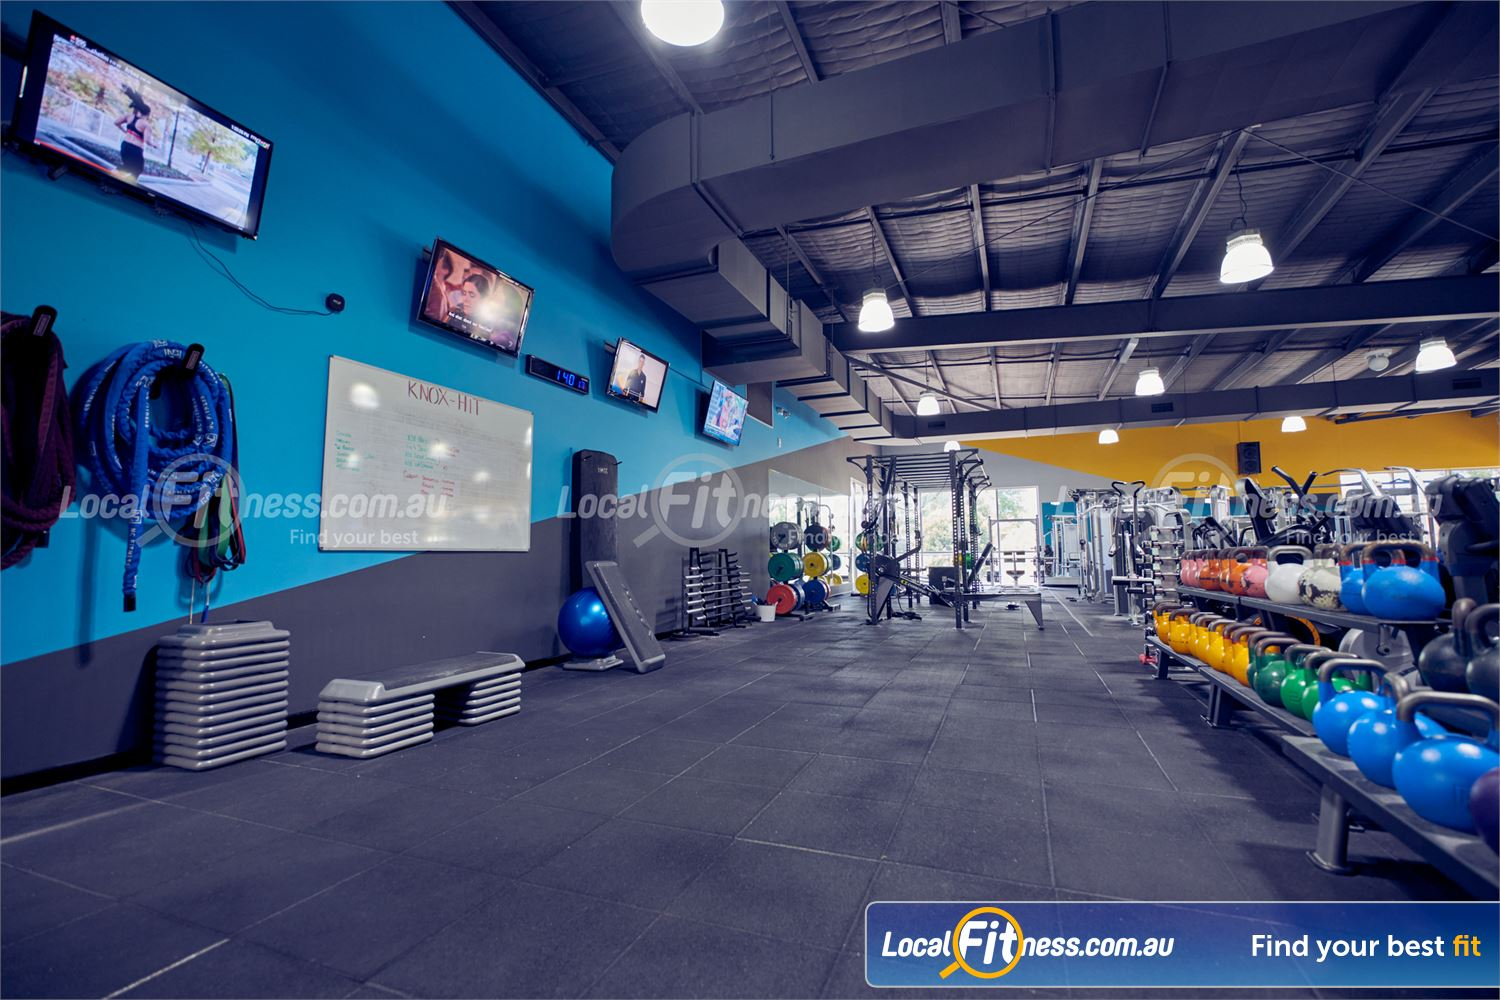 Knox Leisureworks Boronia Fully equipped functional training and Knox HIIT gym space.